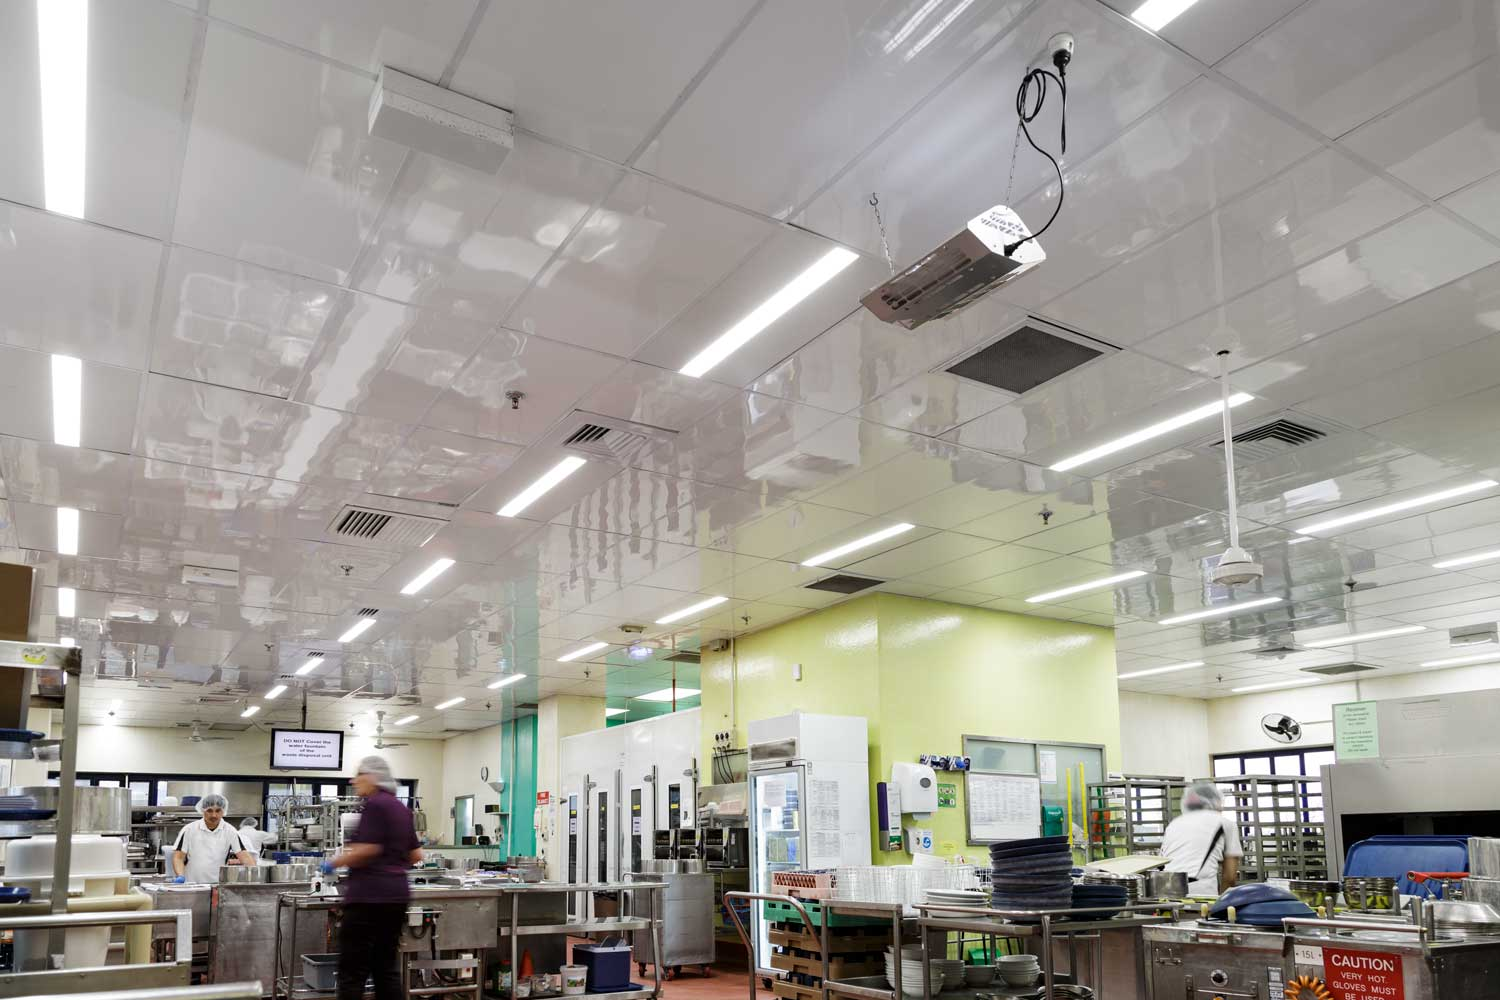 Commercial Kitchen Ceiling Replaced With Low Maintenance